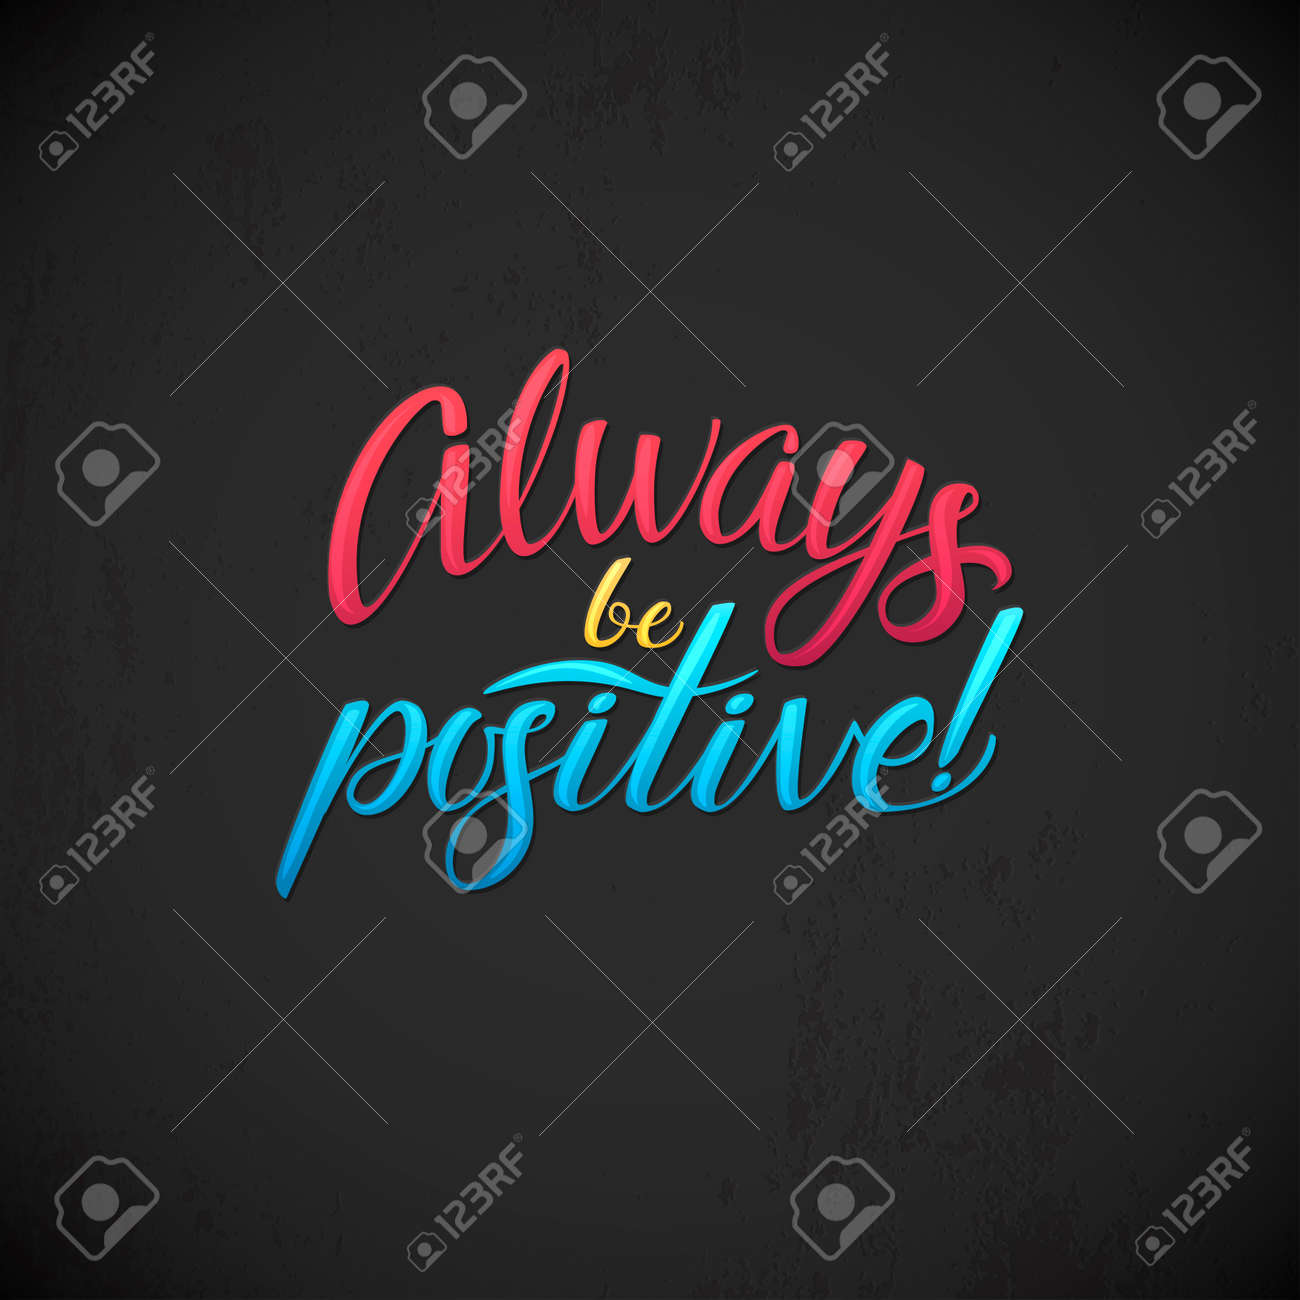 Always Be Positive Calligraphic Poster Hand Calligraphy Card